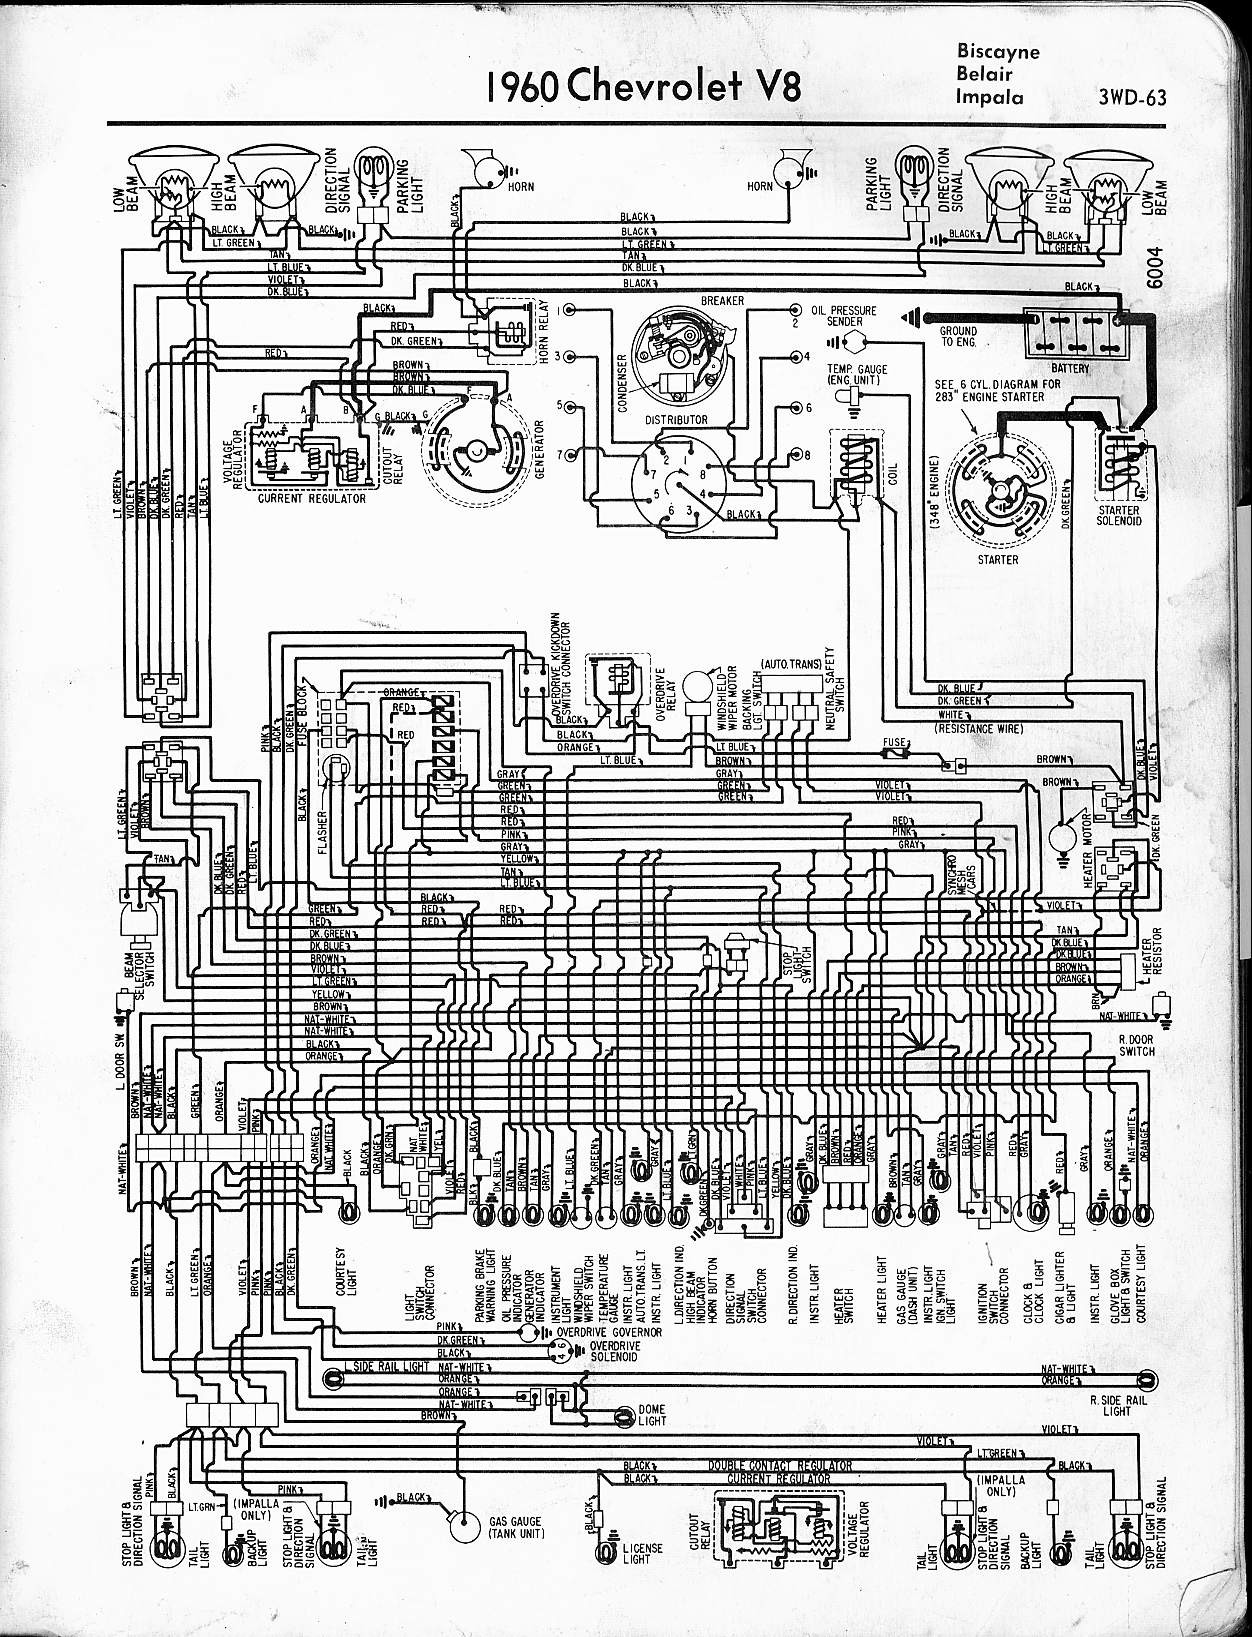 Chevrolet Truck Wiring Diagrams 57 65 Chevy Wiring Diagrams Of Chevrolet Truck Wiring Diagrams